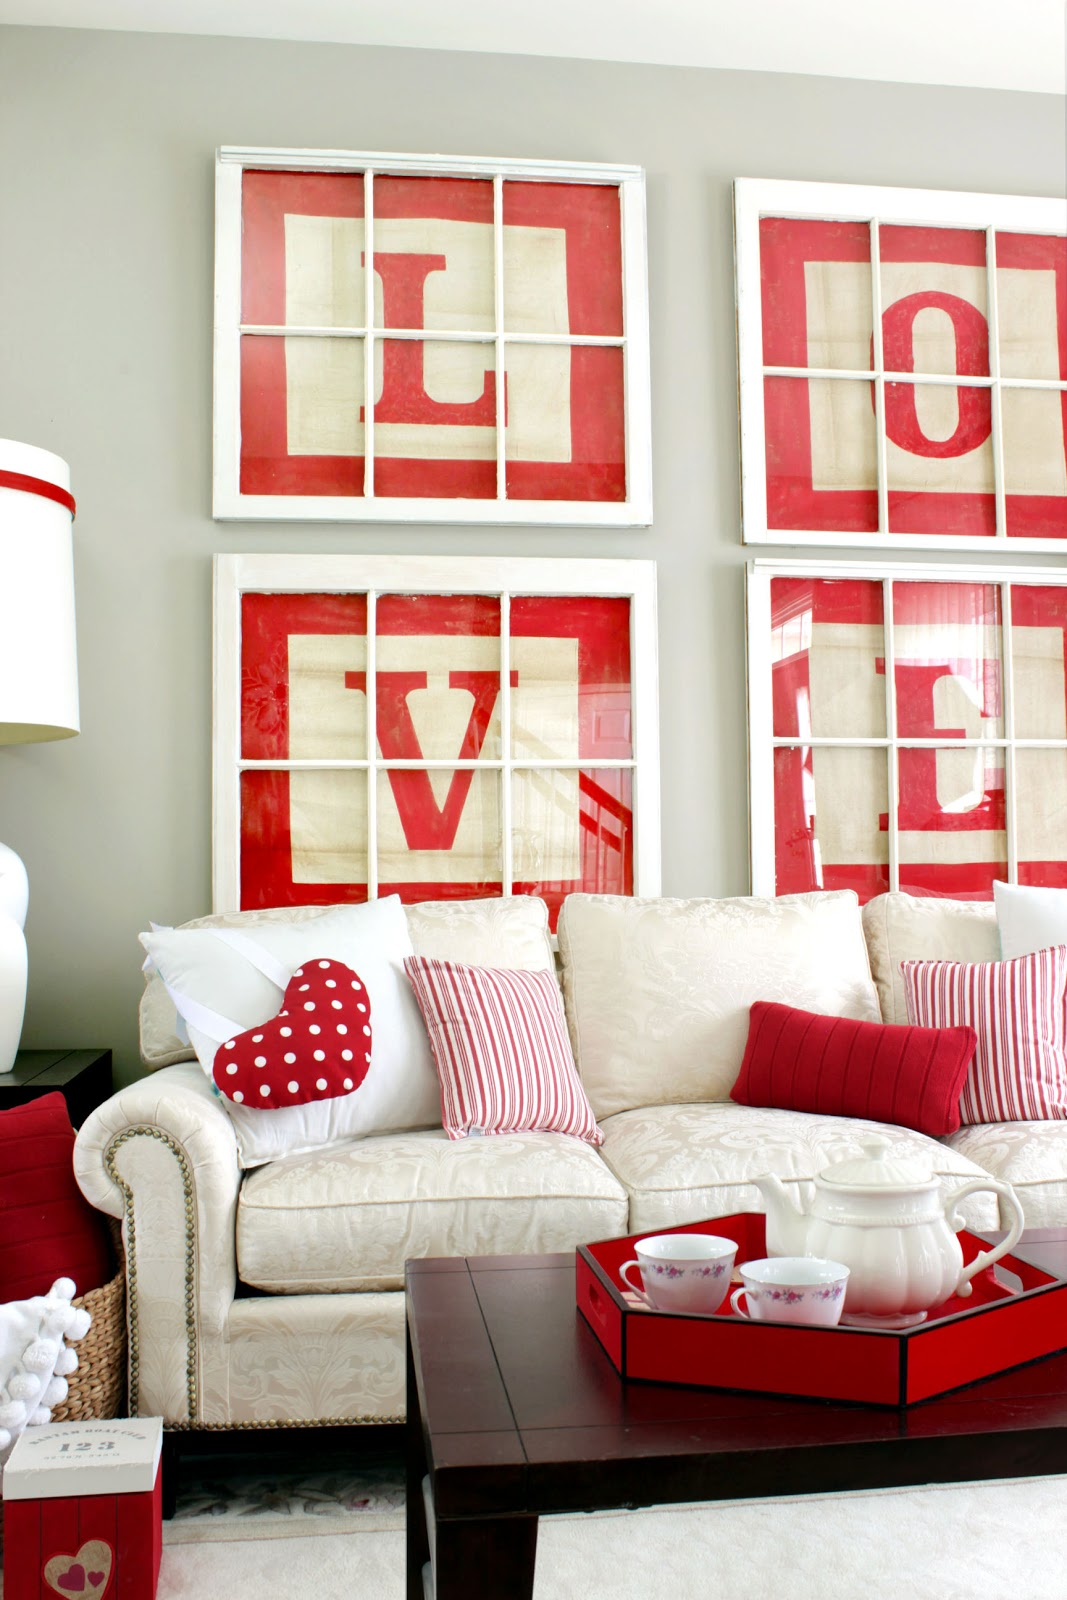 Vintage Living room decorated for Valentines with Love wall art and lots of red